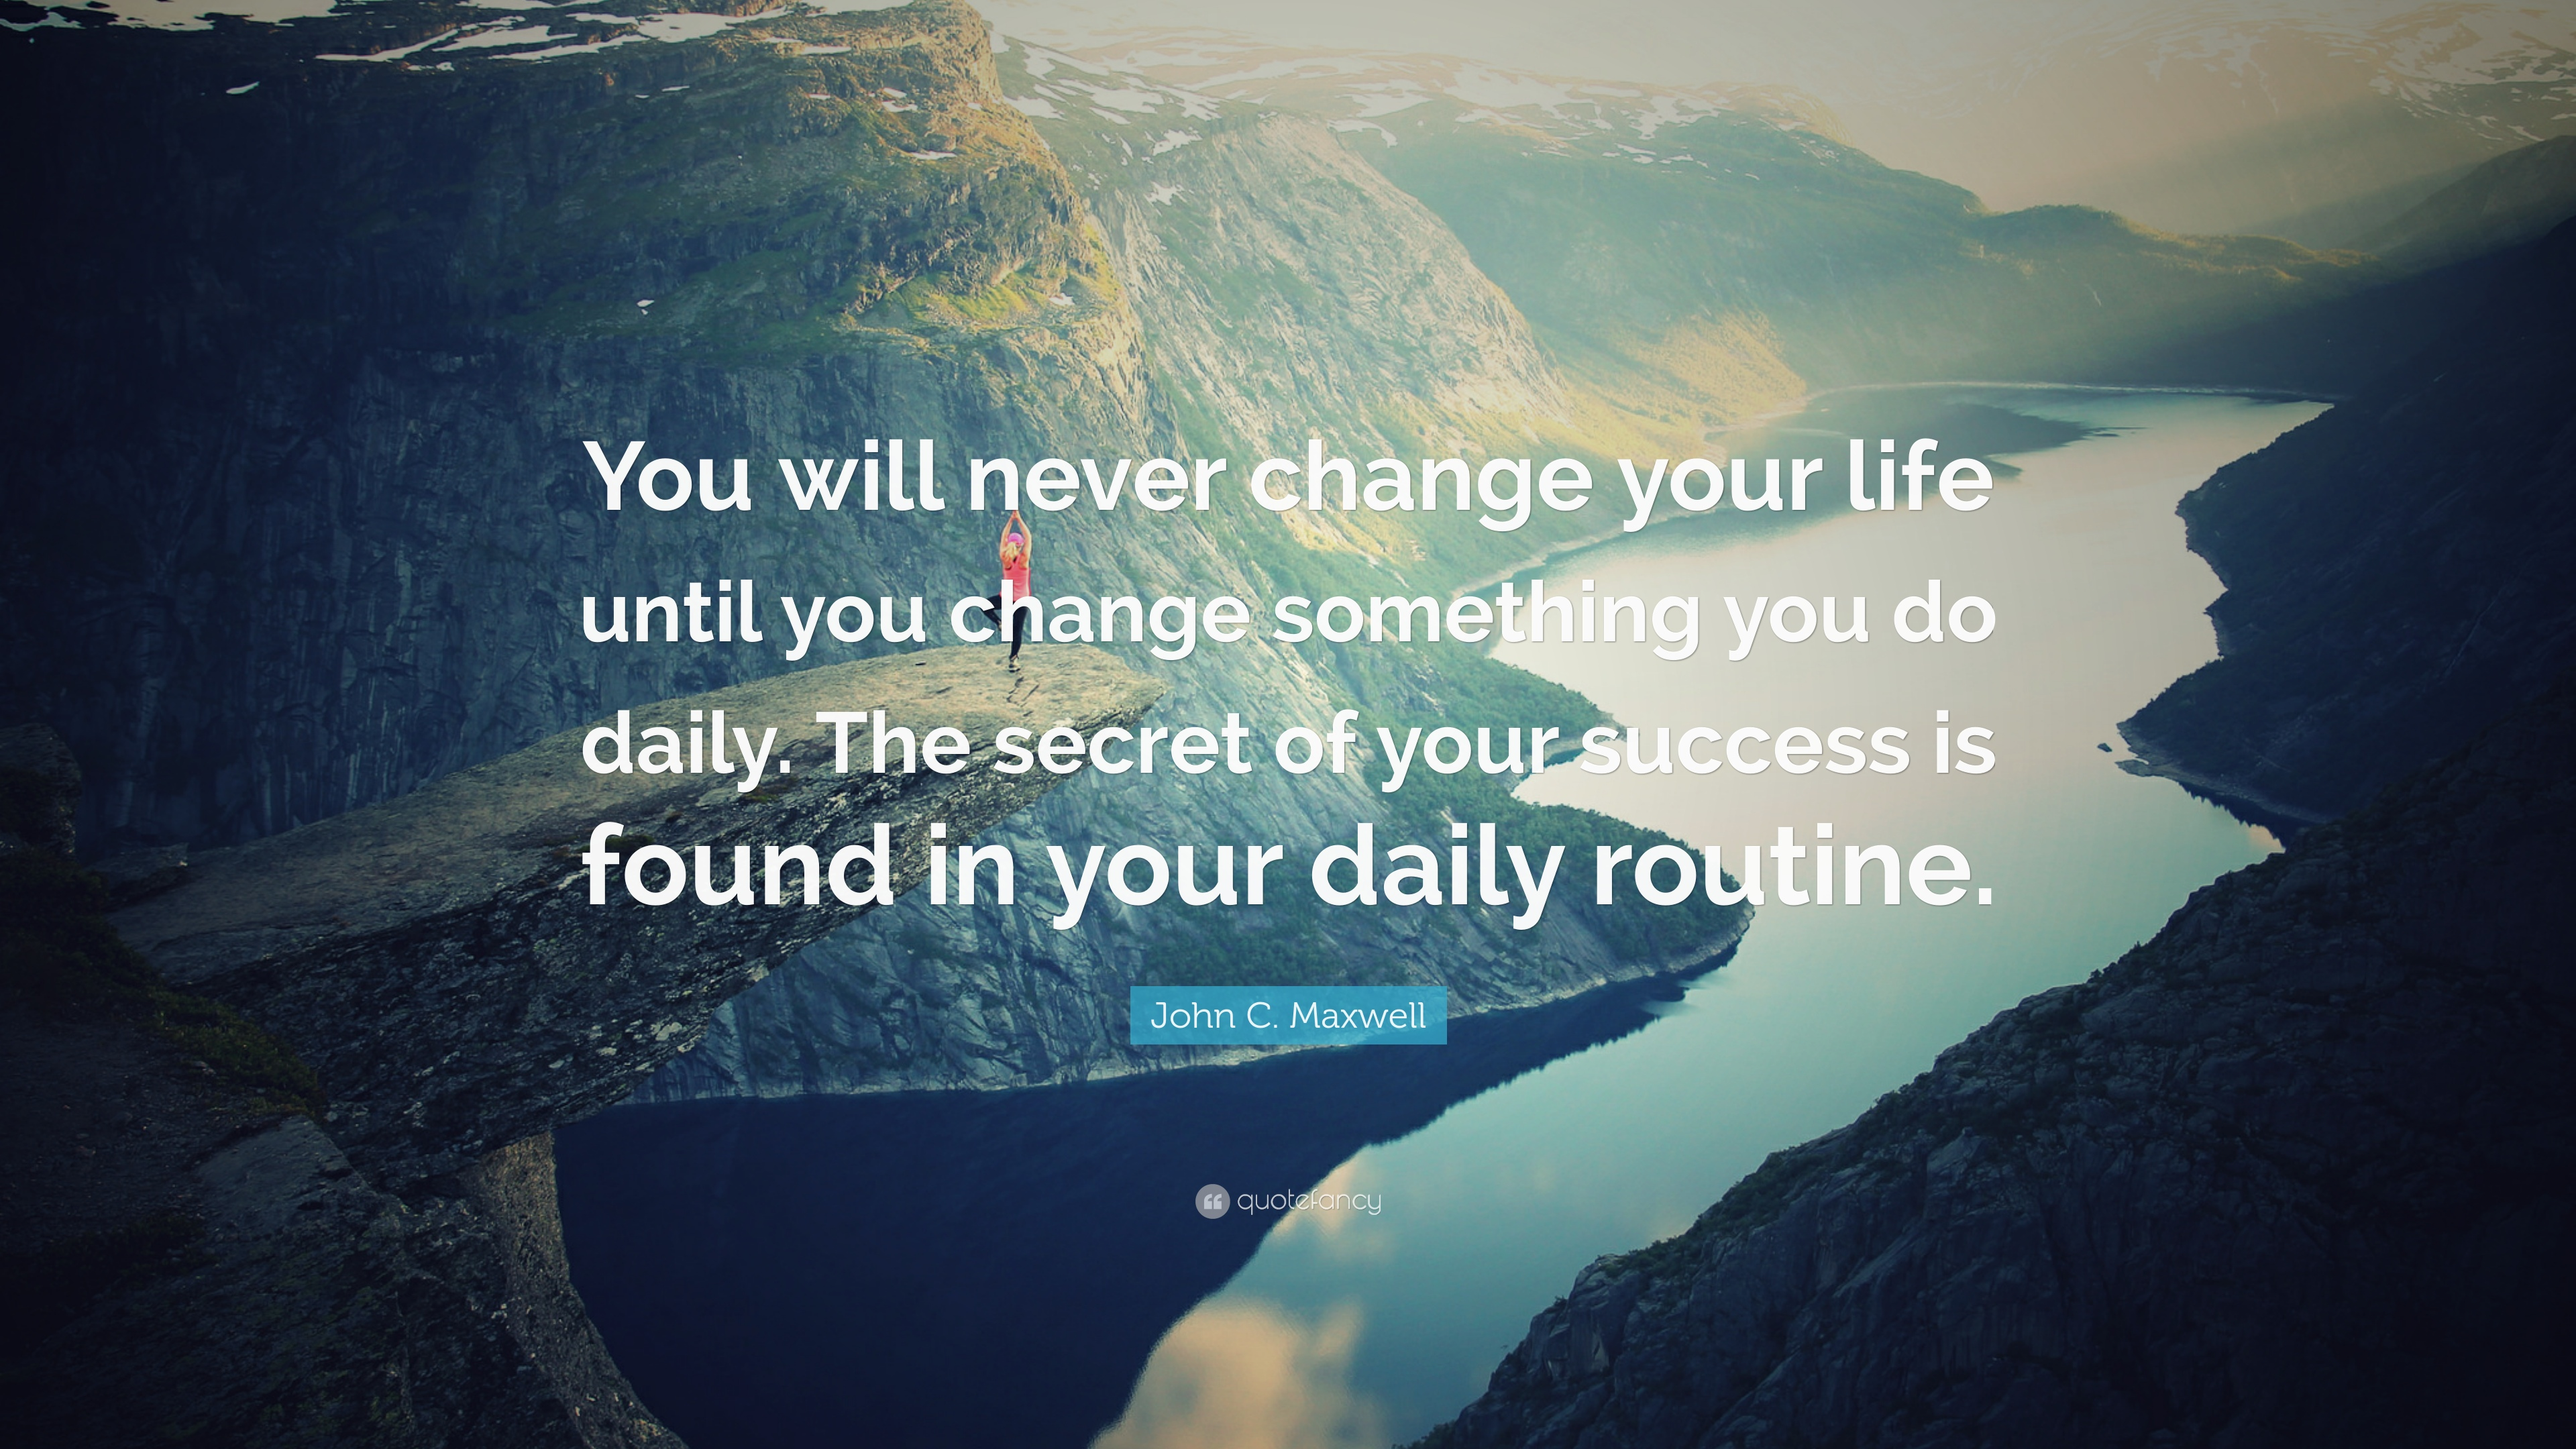 You Will Never Change Your Life John Maxwell Quotes